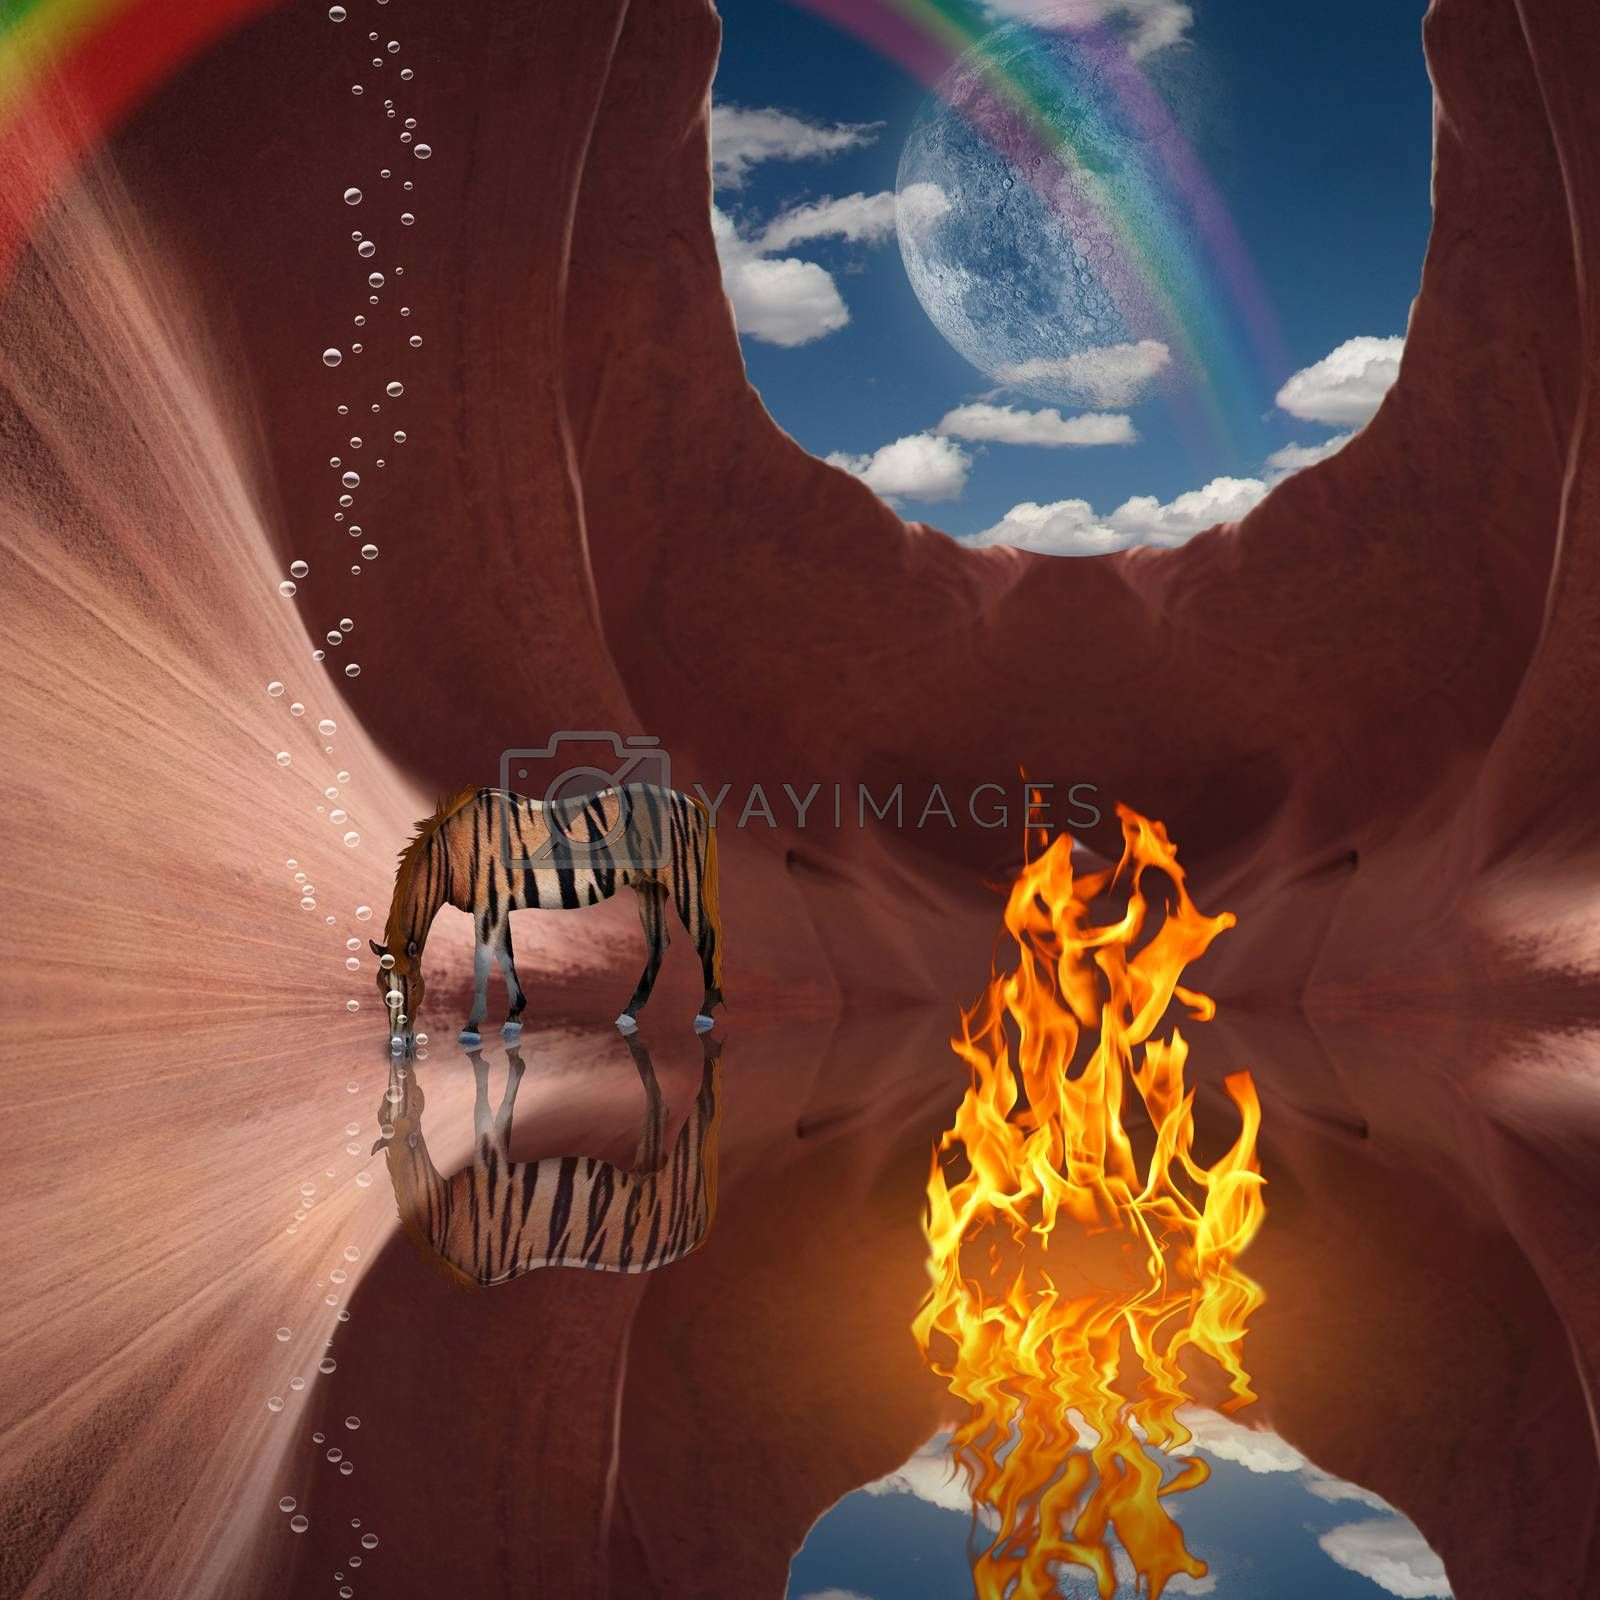 Surrealism. Red rock cave with fire and striped horse. Rainbow and moon in the sky. 3D rendering